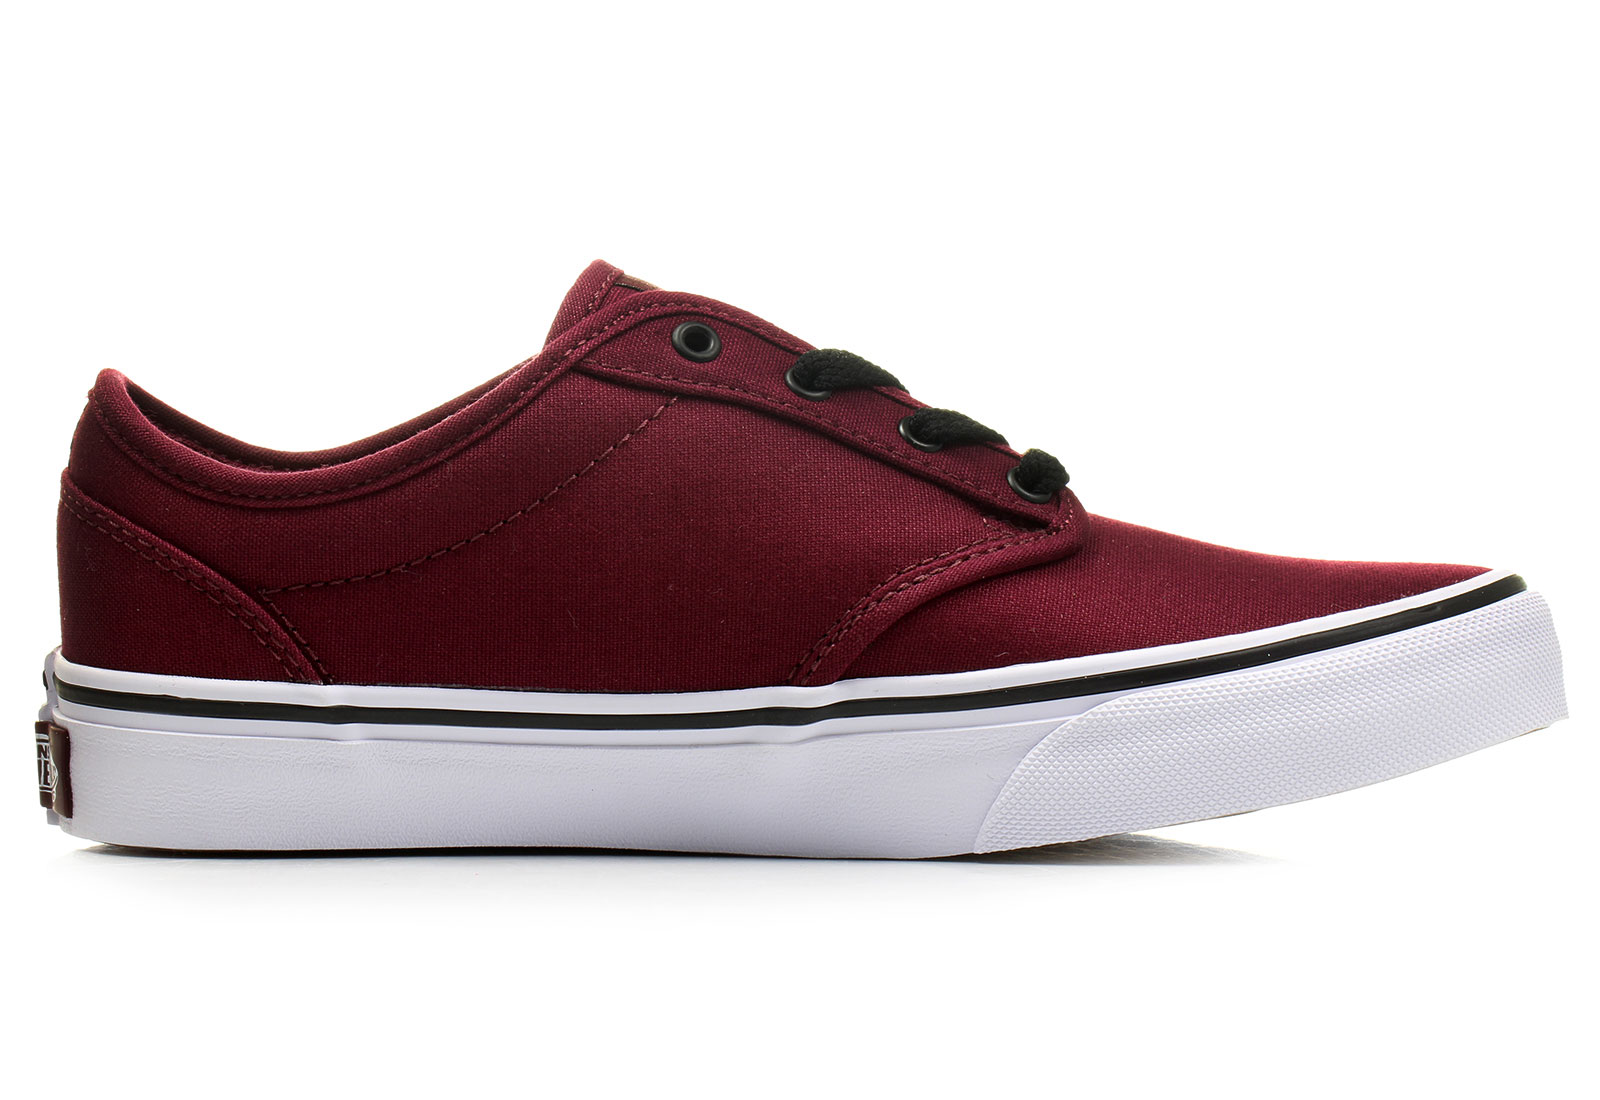 vans atwood biale